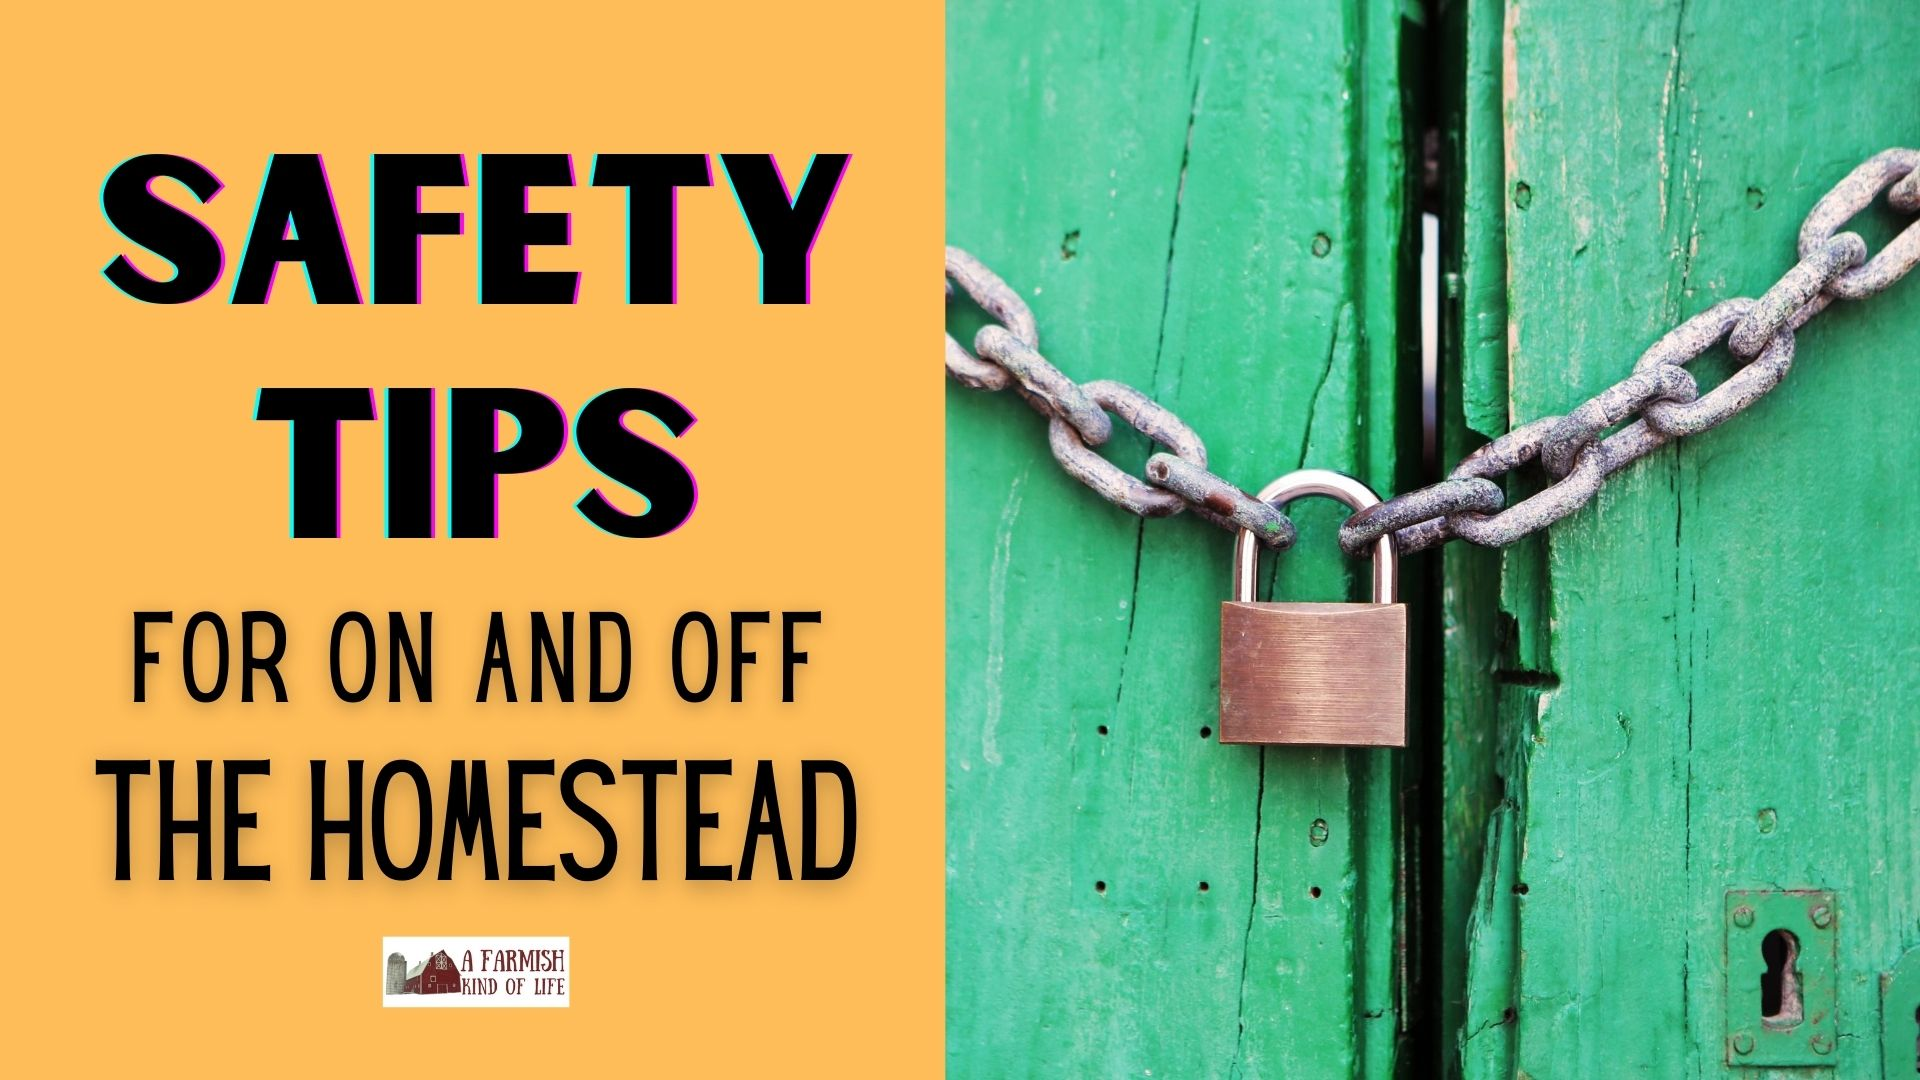 100: Safety Tips for the Homestead and Beyond